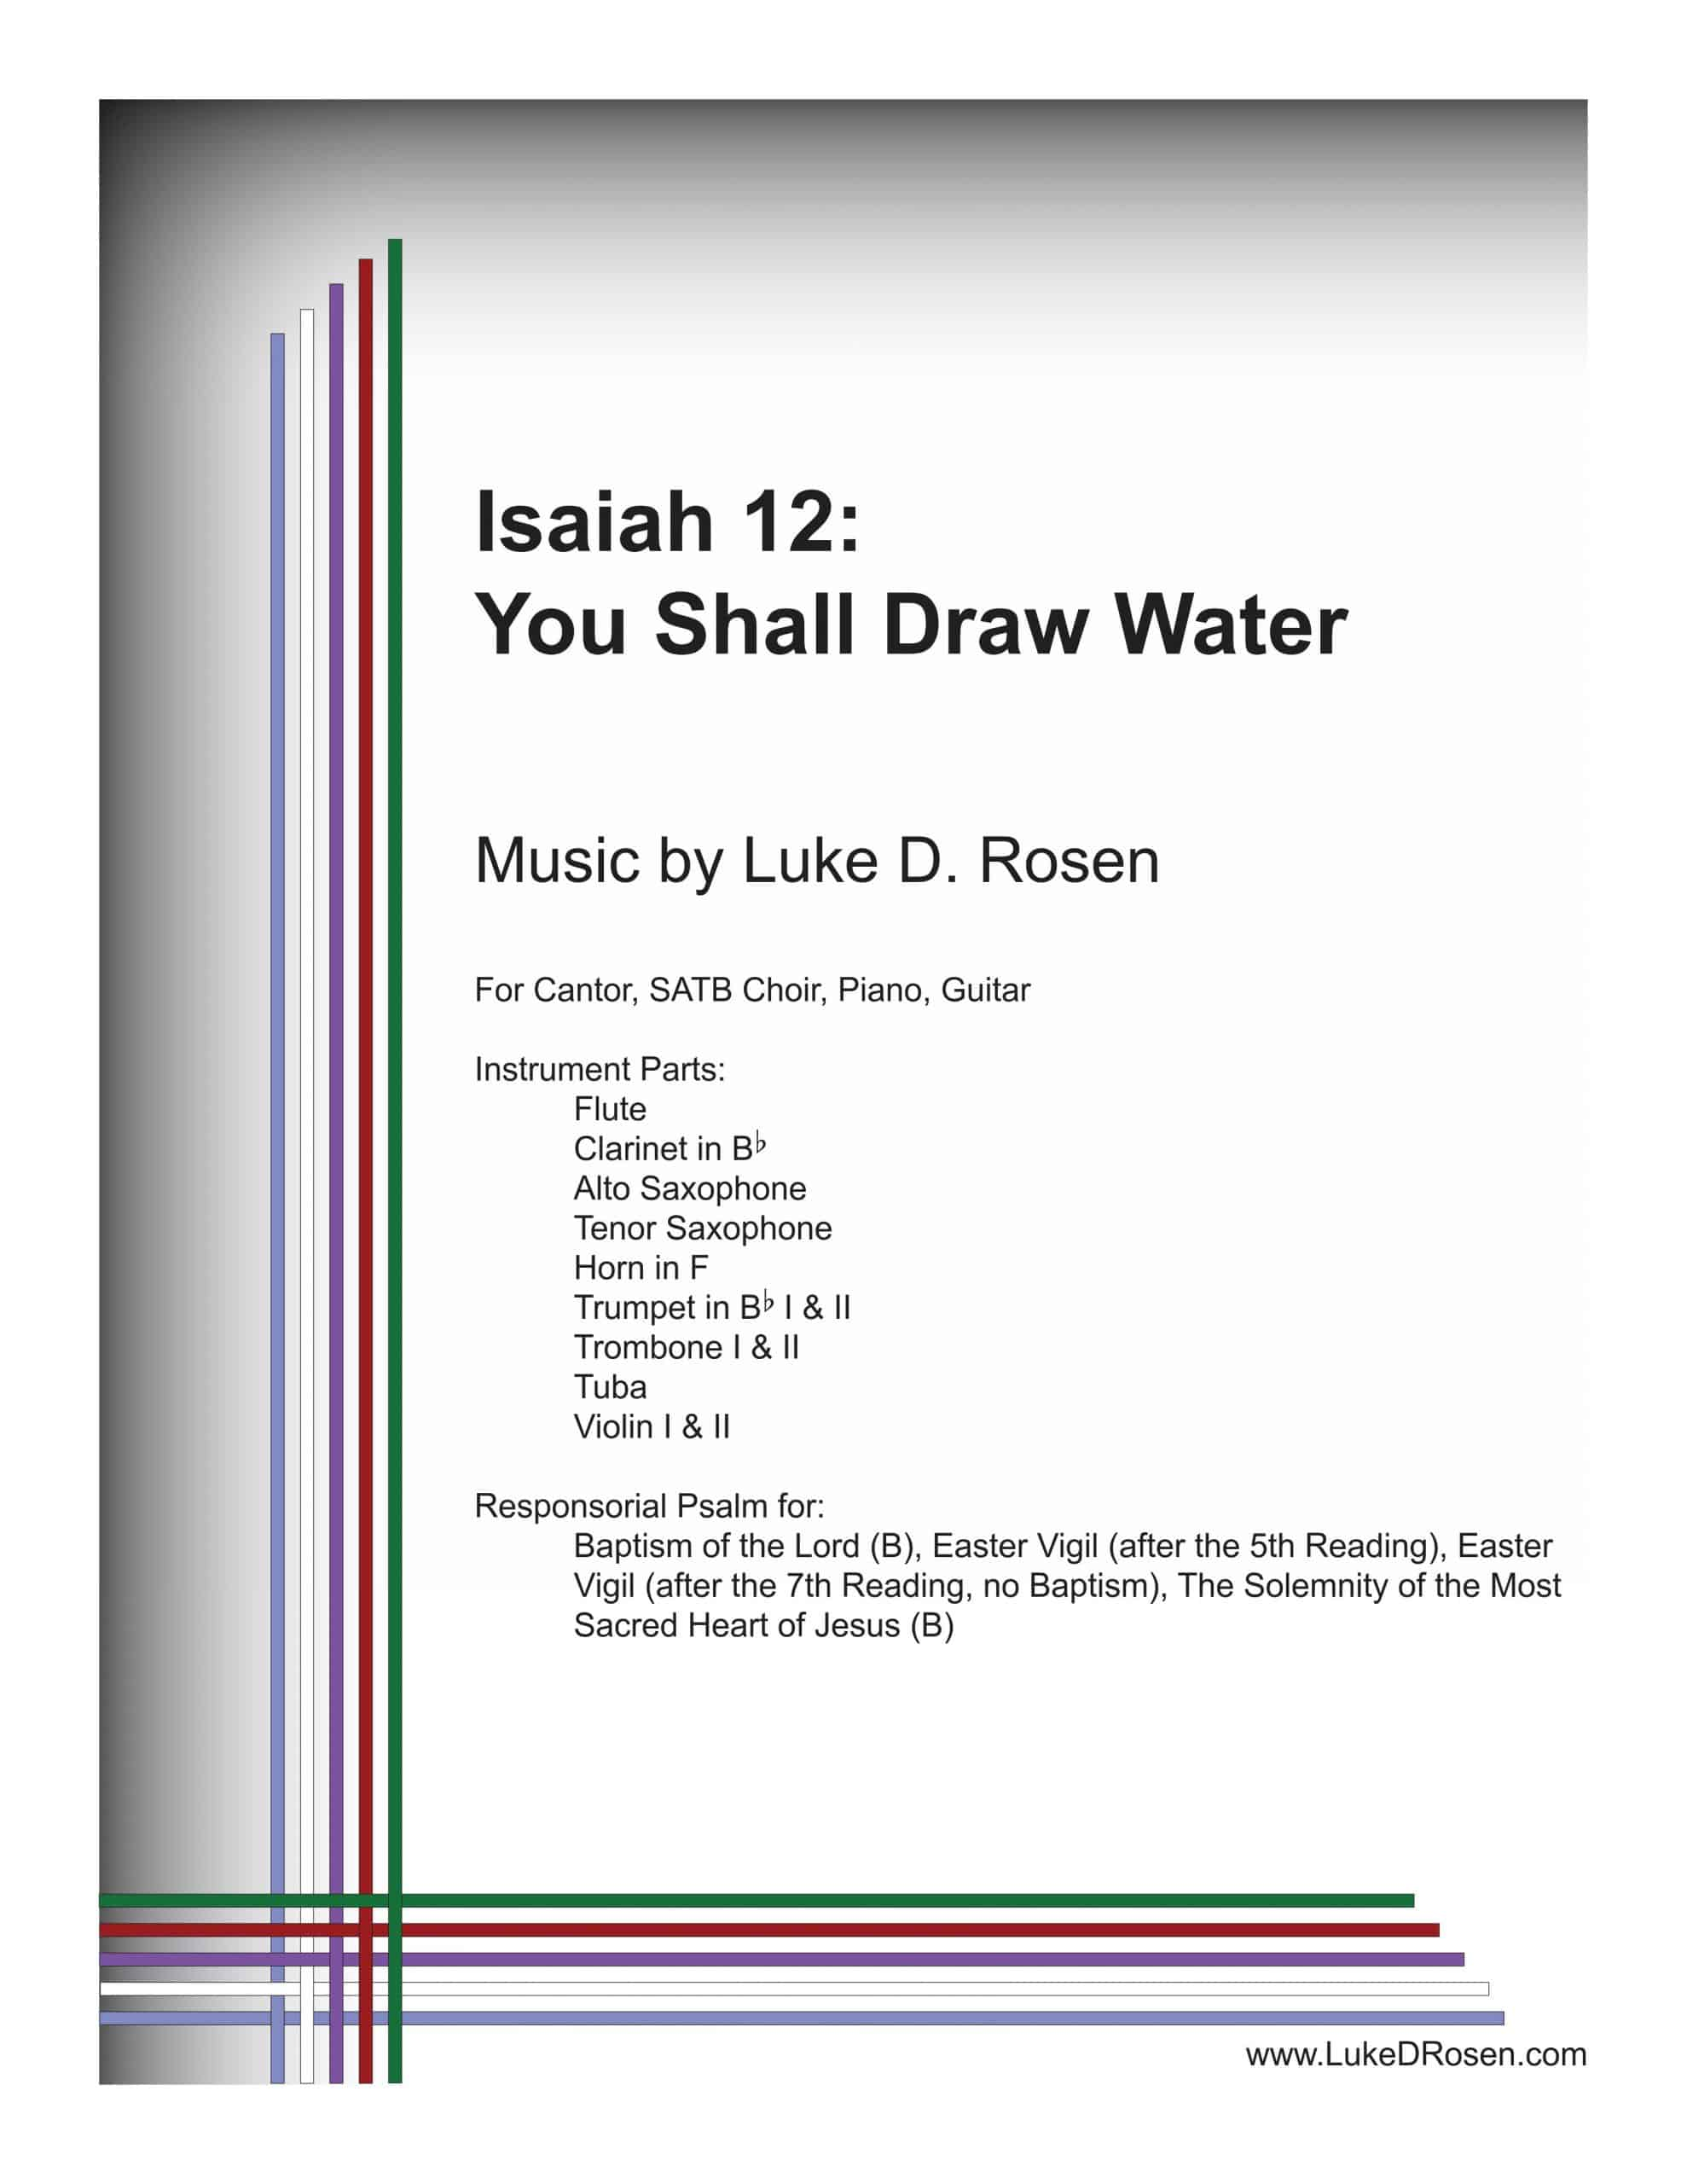 Isaiah 12 You Shall Draw Water ROSEN scaled